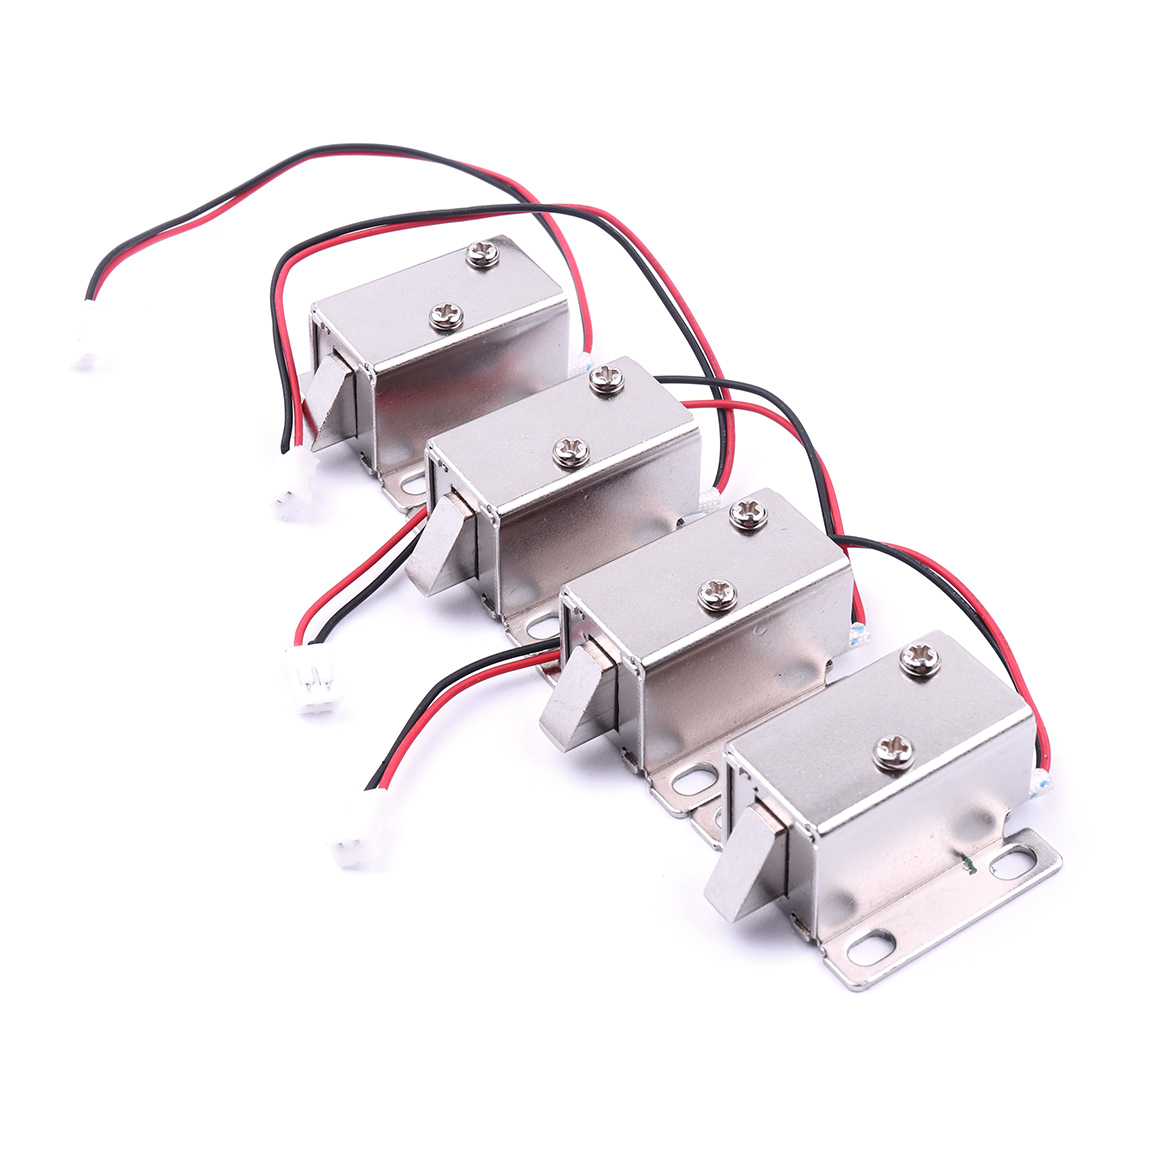 4PCS DC12V 350MA Cabinet Door Lock Electric Lock Assembly Solenoid For Door Electronic Controlled System 27*29*18mm цена